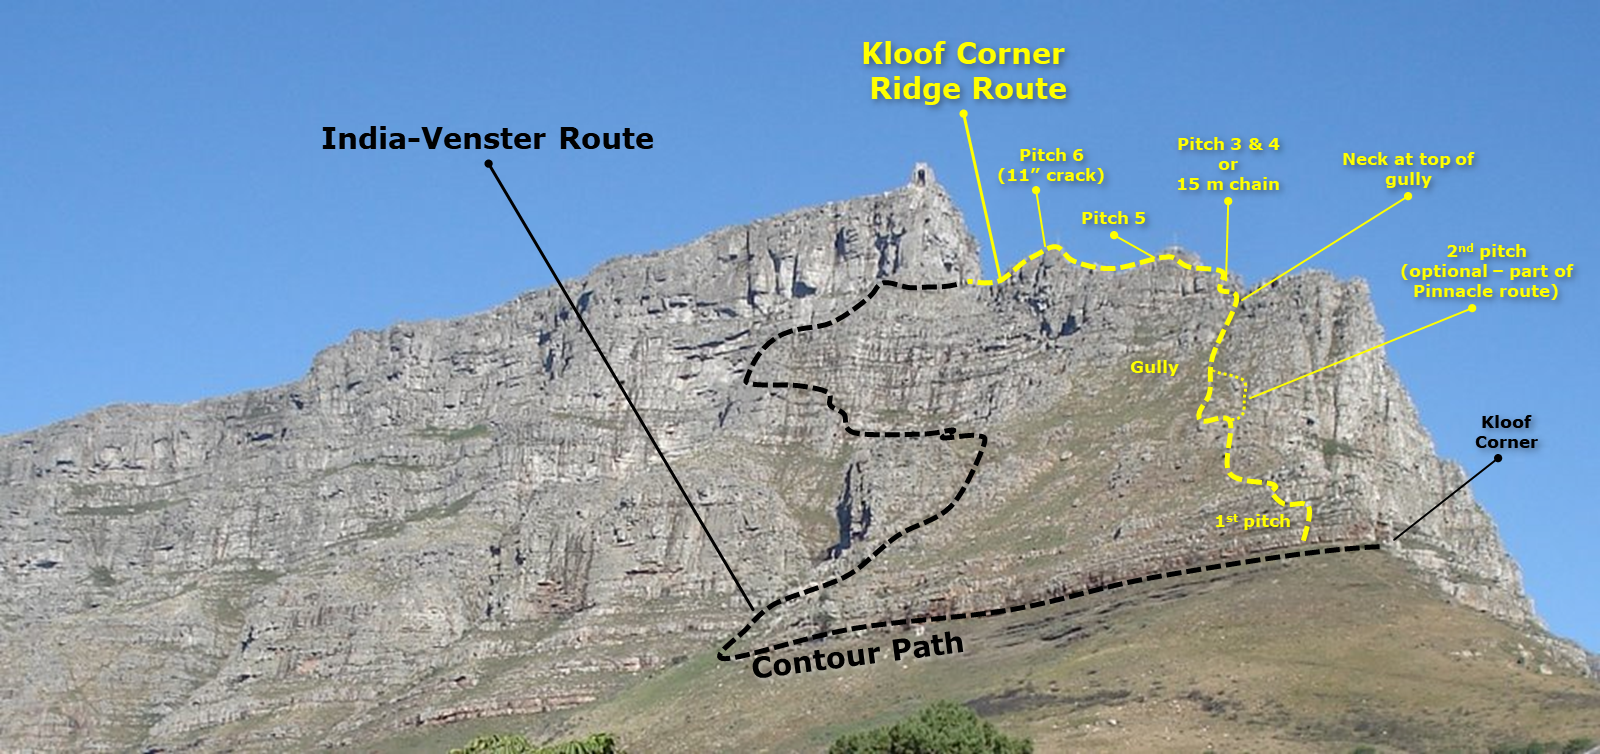 Kloof Corner Route Overview